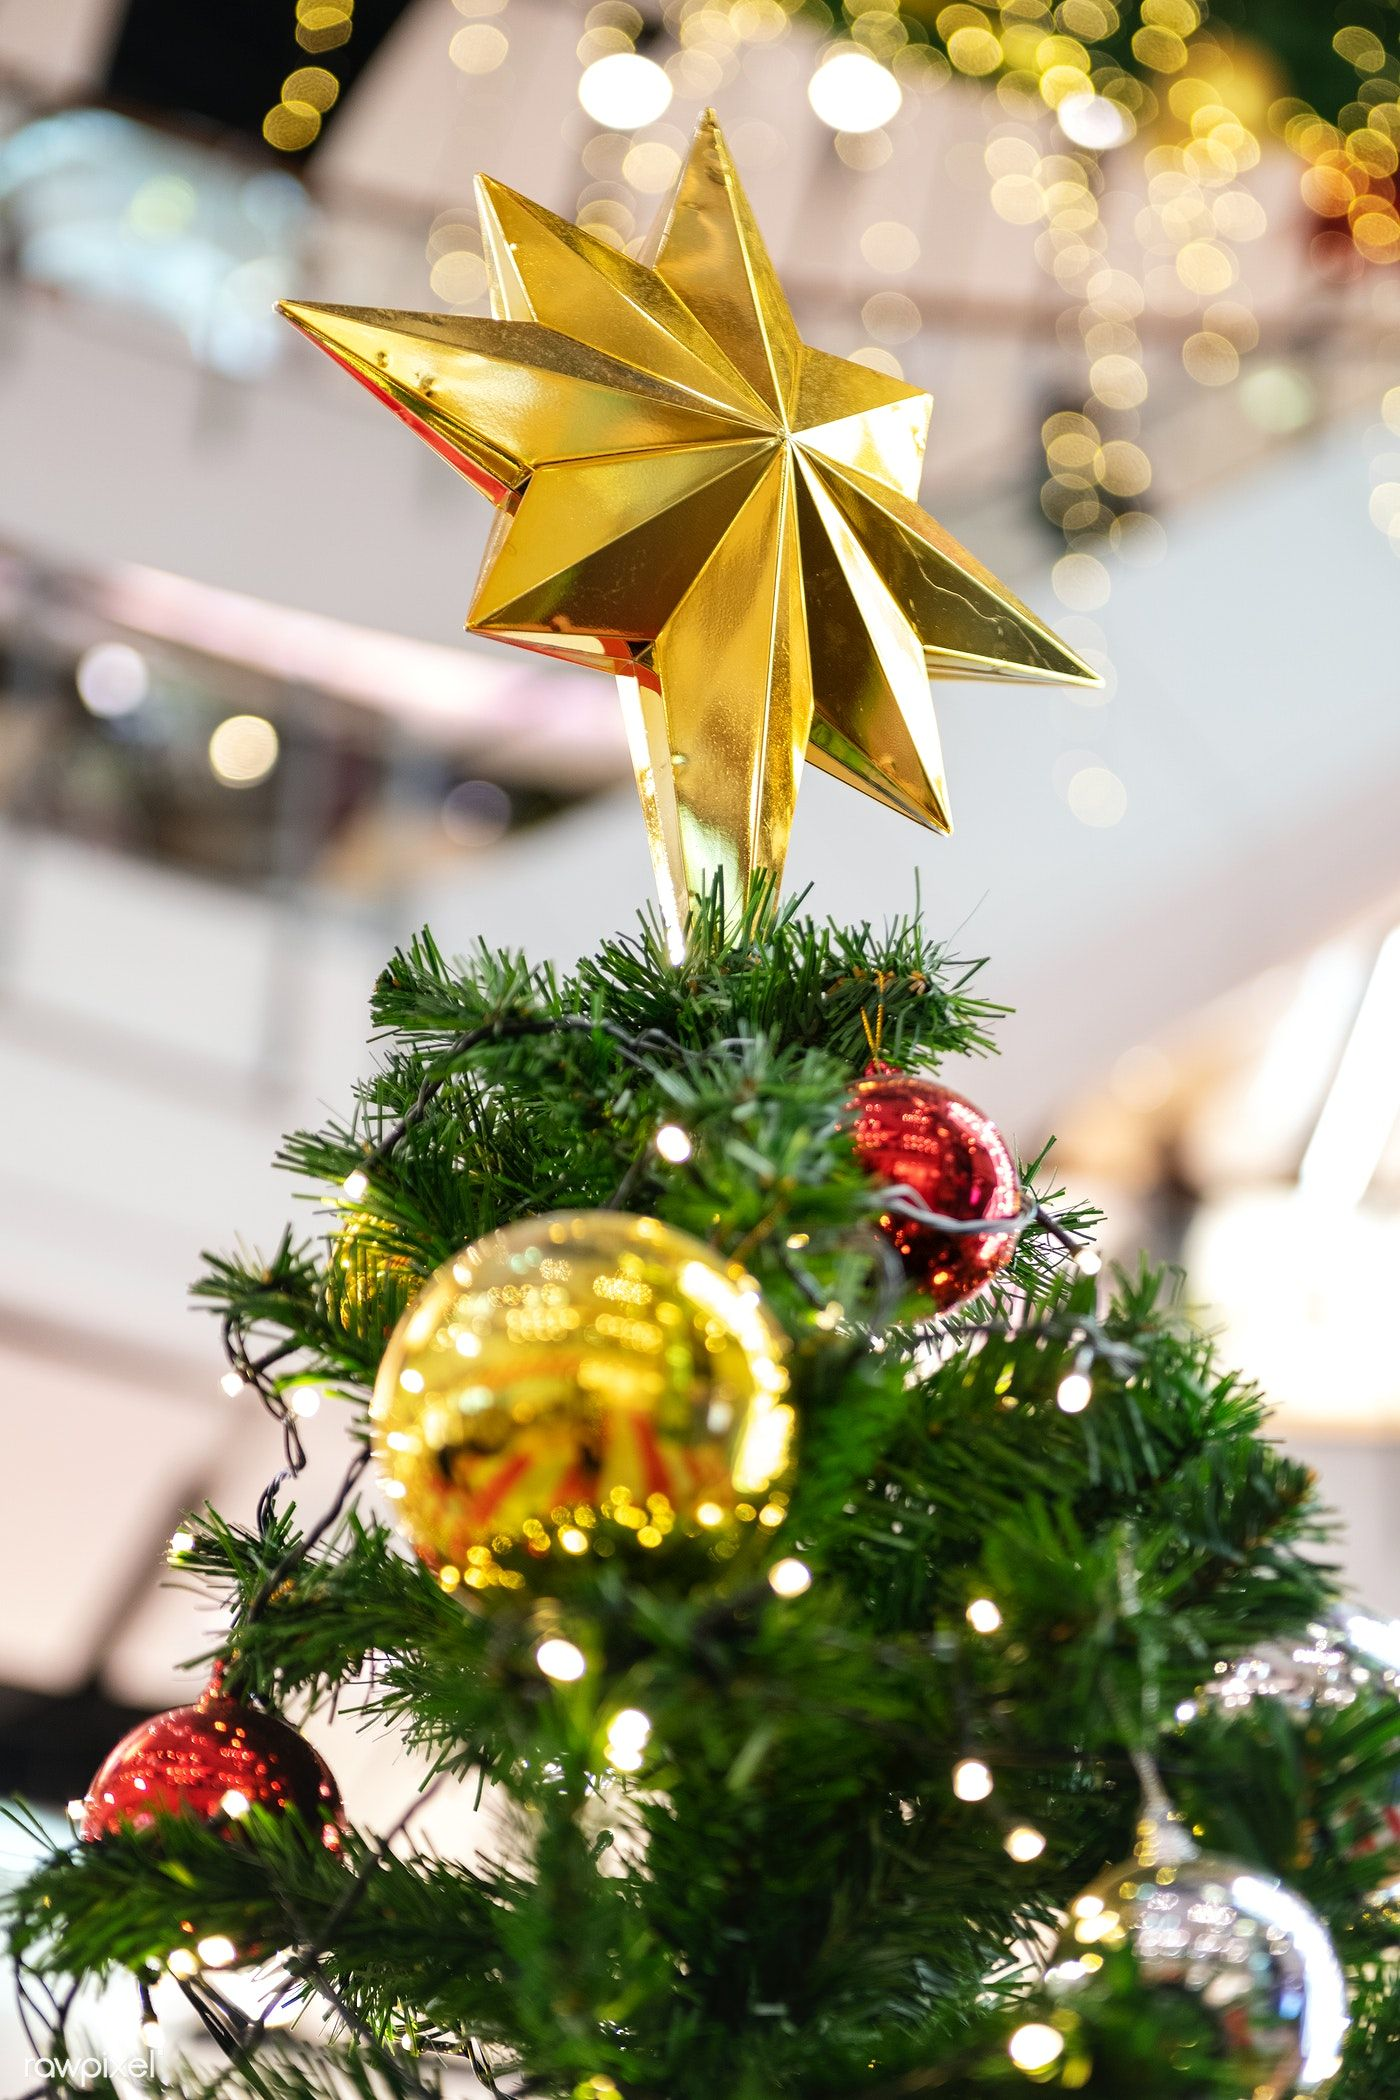 Gold Christmas Star On Top Of A Christmas Tree Free Image By Rawpixel Com Teddy Rawpixel In 2020 Gold Christmas Christmas Star Christmas Tree